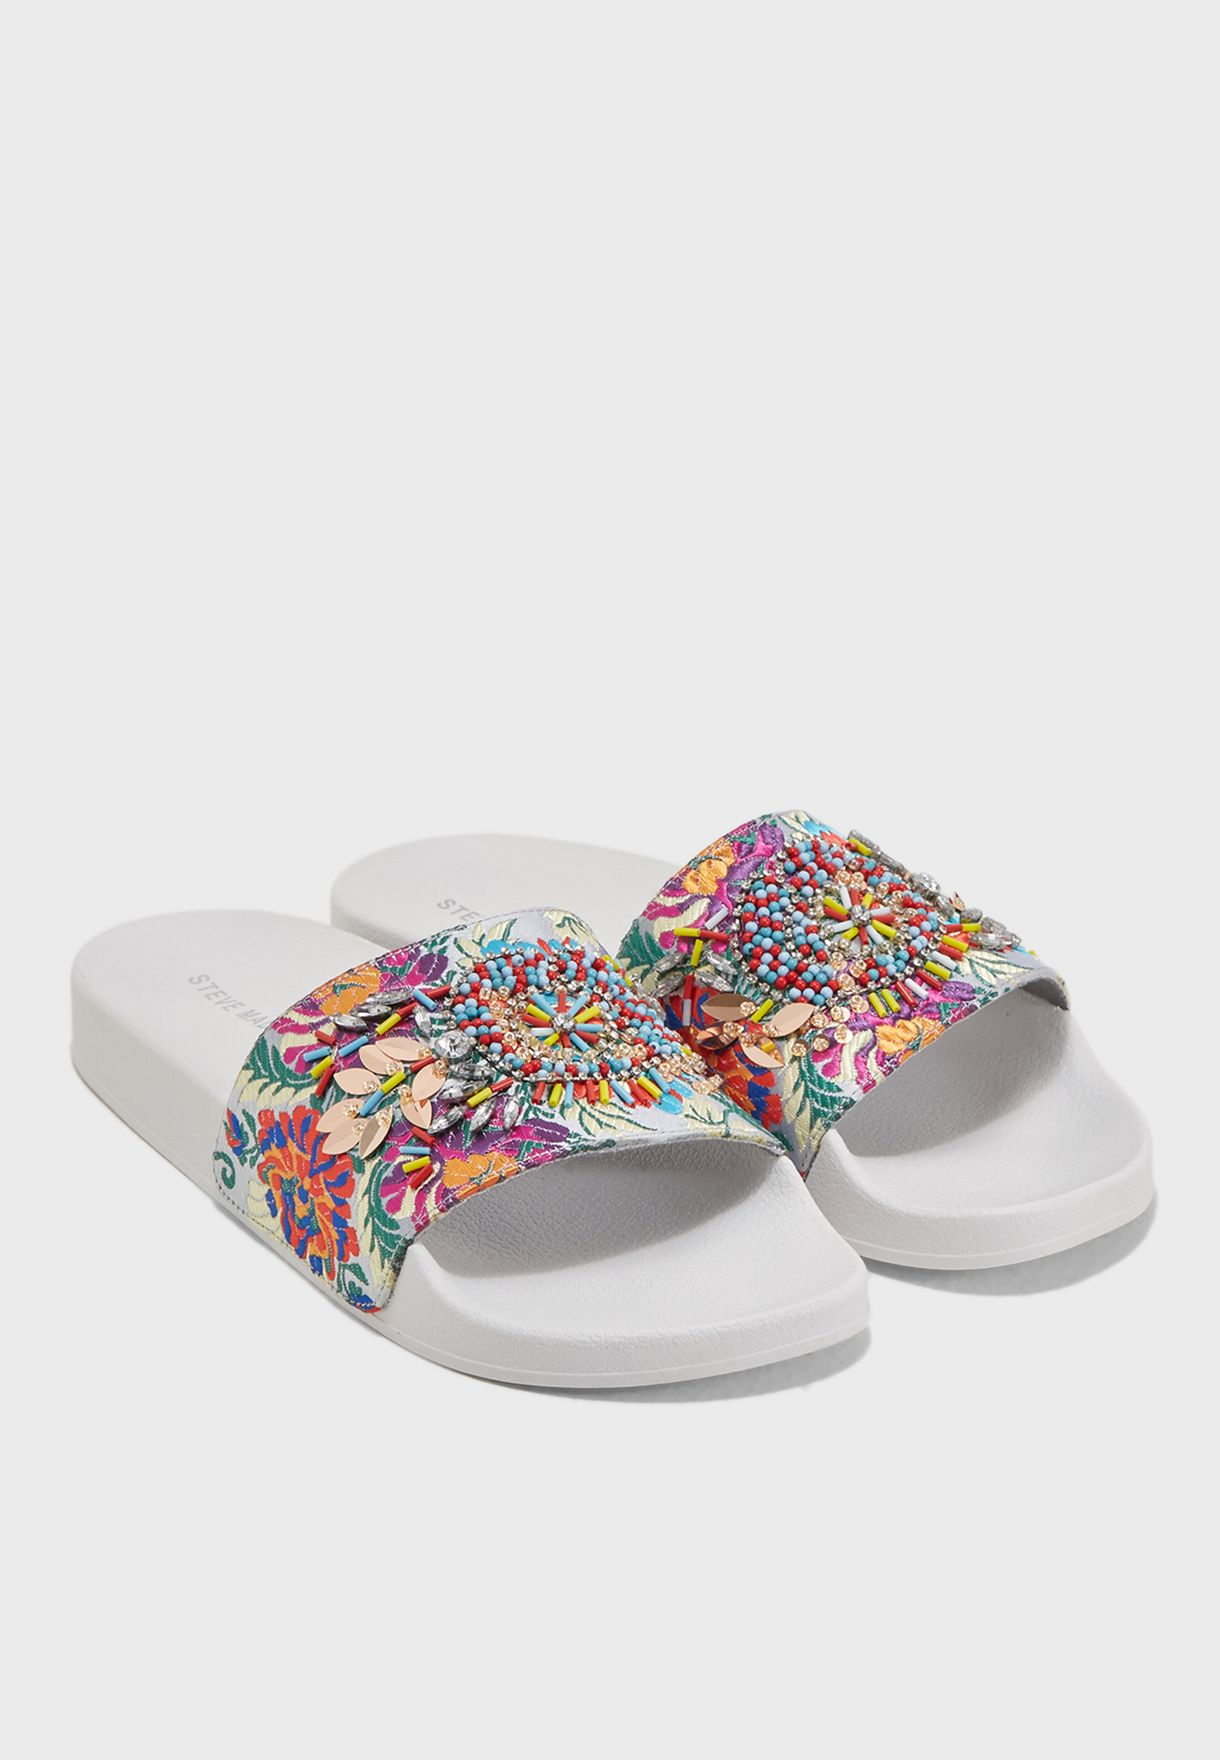 a698d730a Shop Steve Madden prints Sparkly Flat Sandals SPARKLY for Women in ...